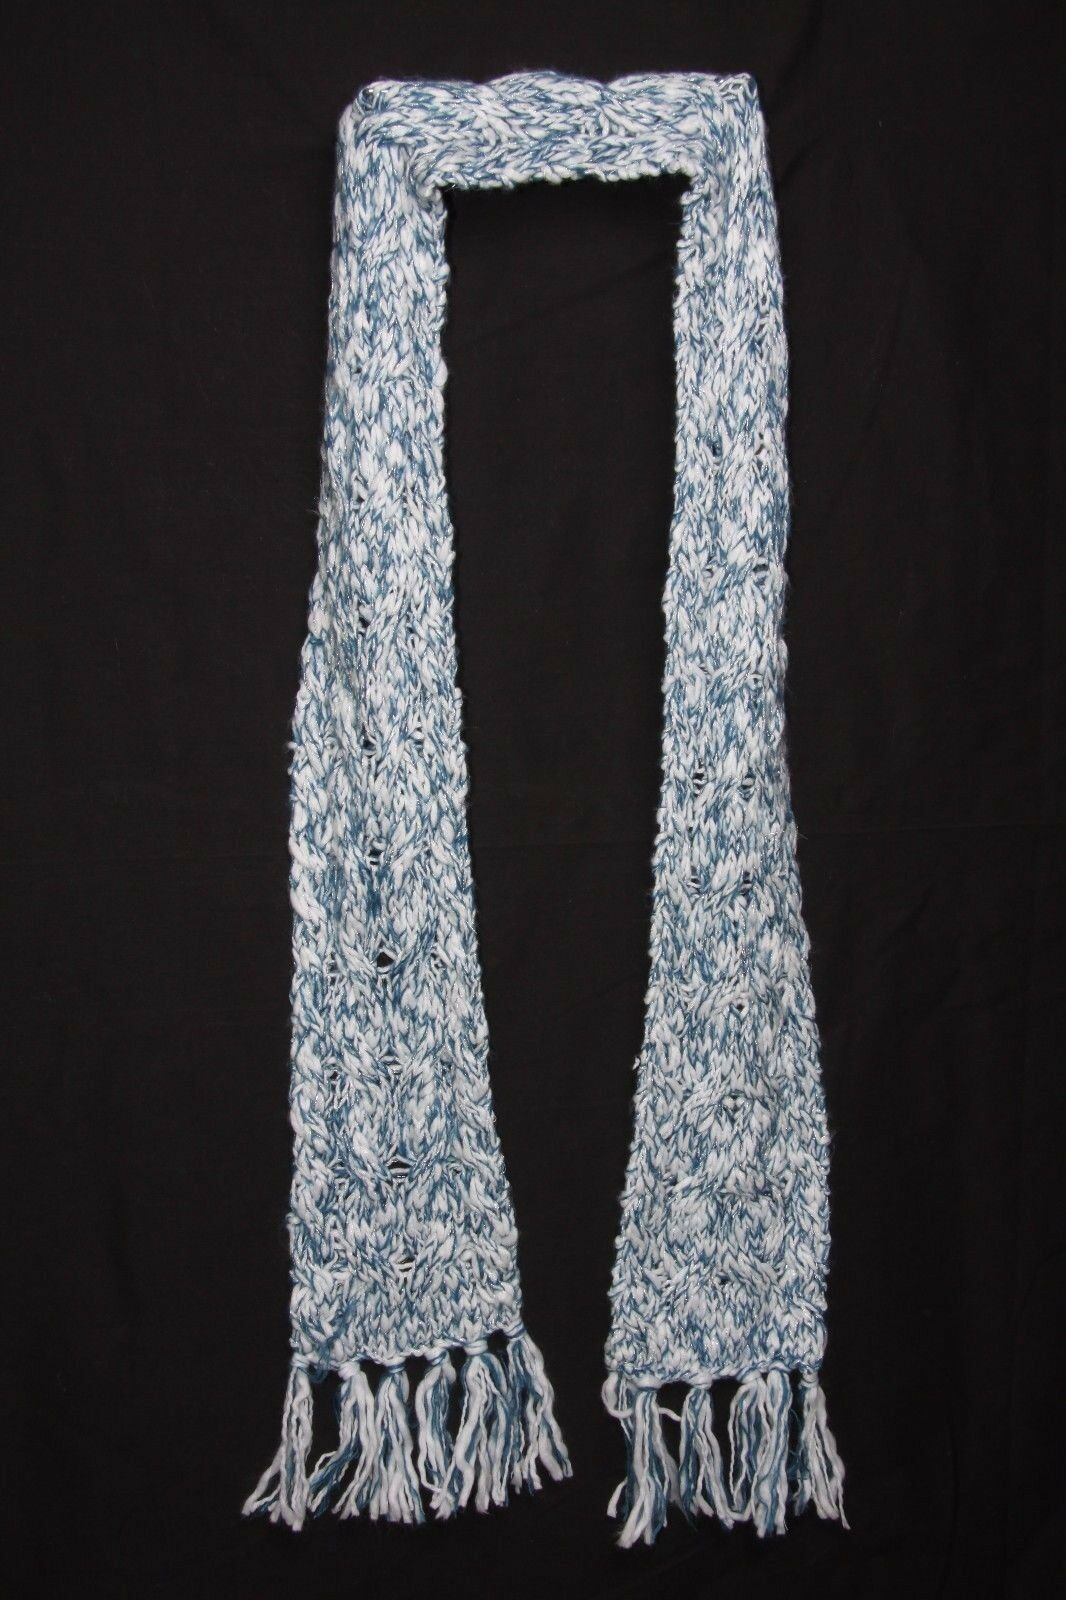 Grey 7 silver Classical Loose Knit W Sparkly Sequins Infinity Shape Scarf S186